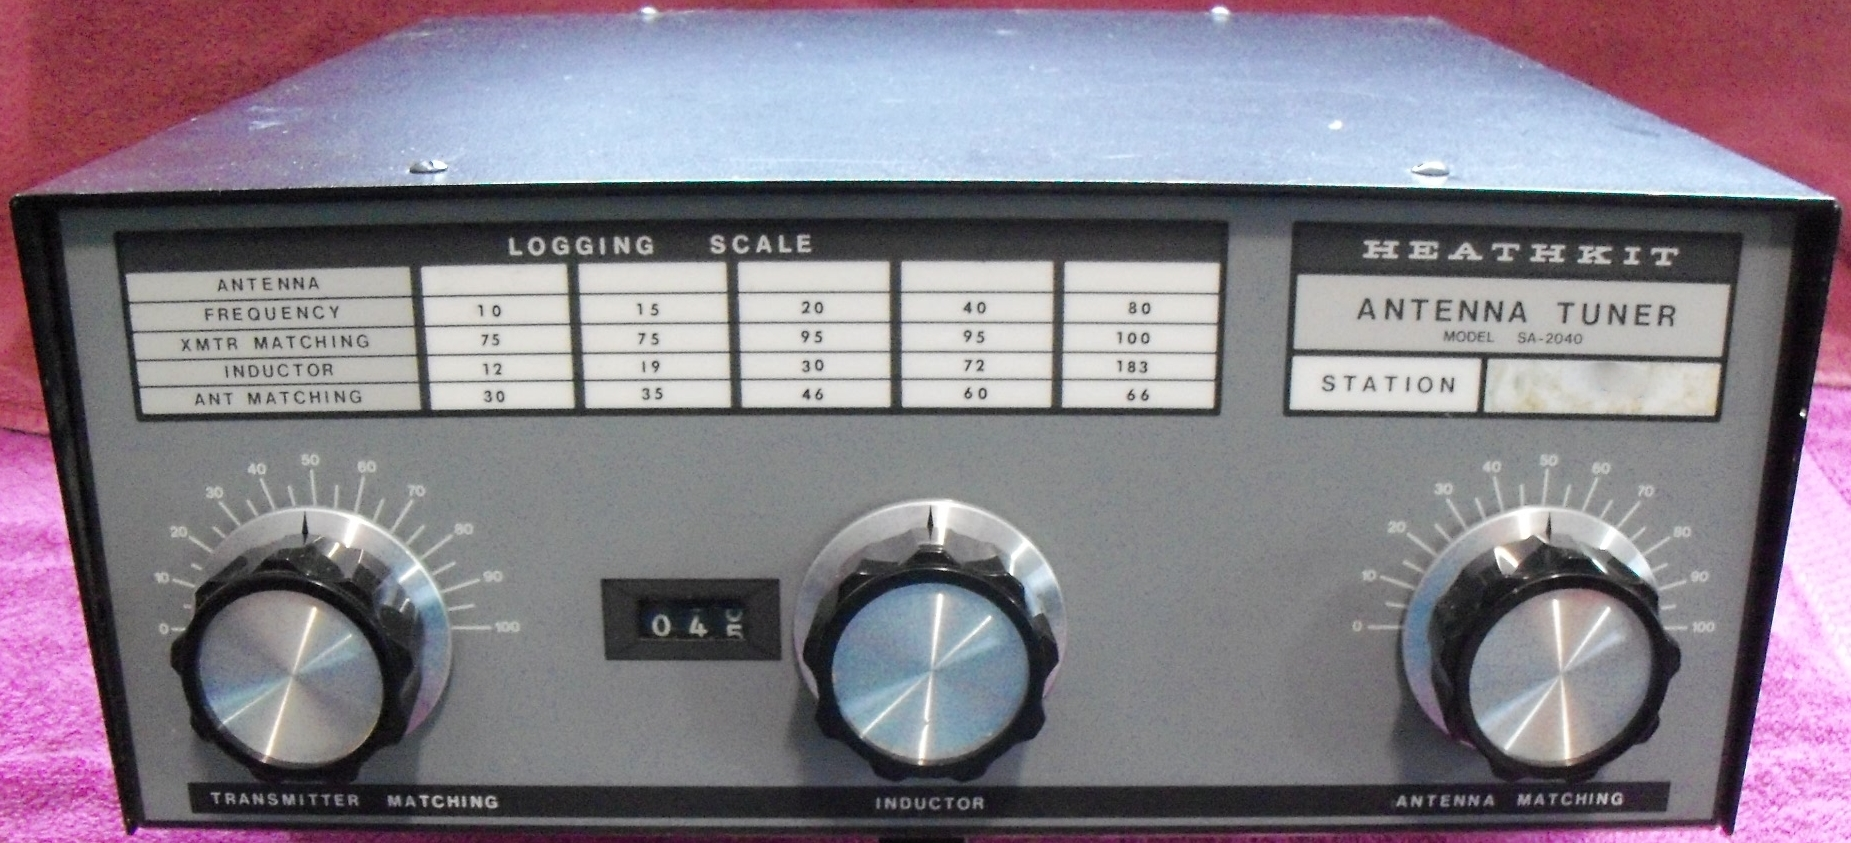 Heathkit 2040 Antenna Tuner | KL7AM